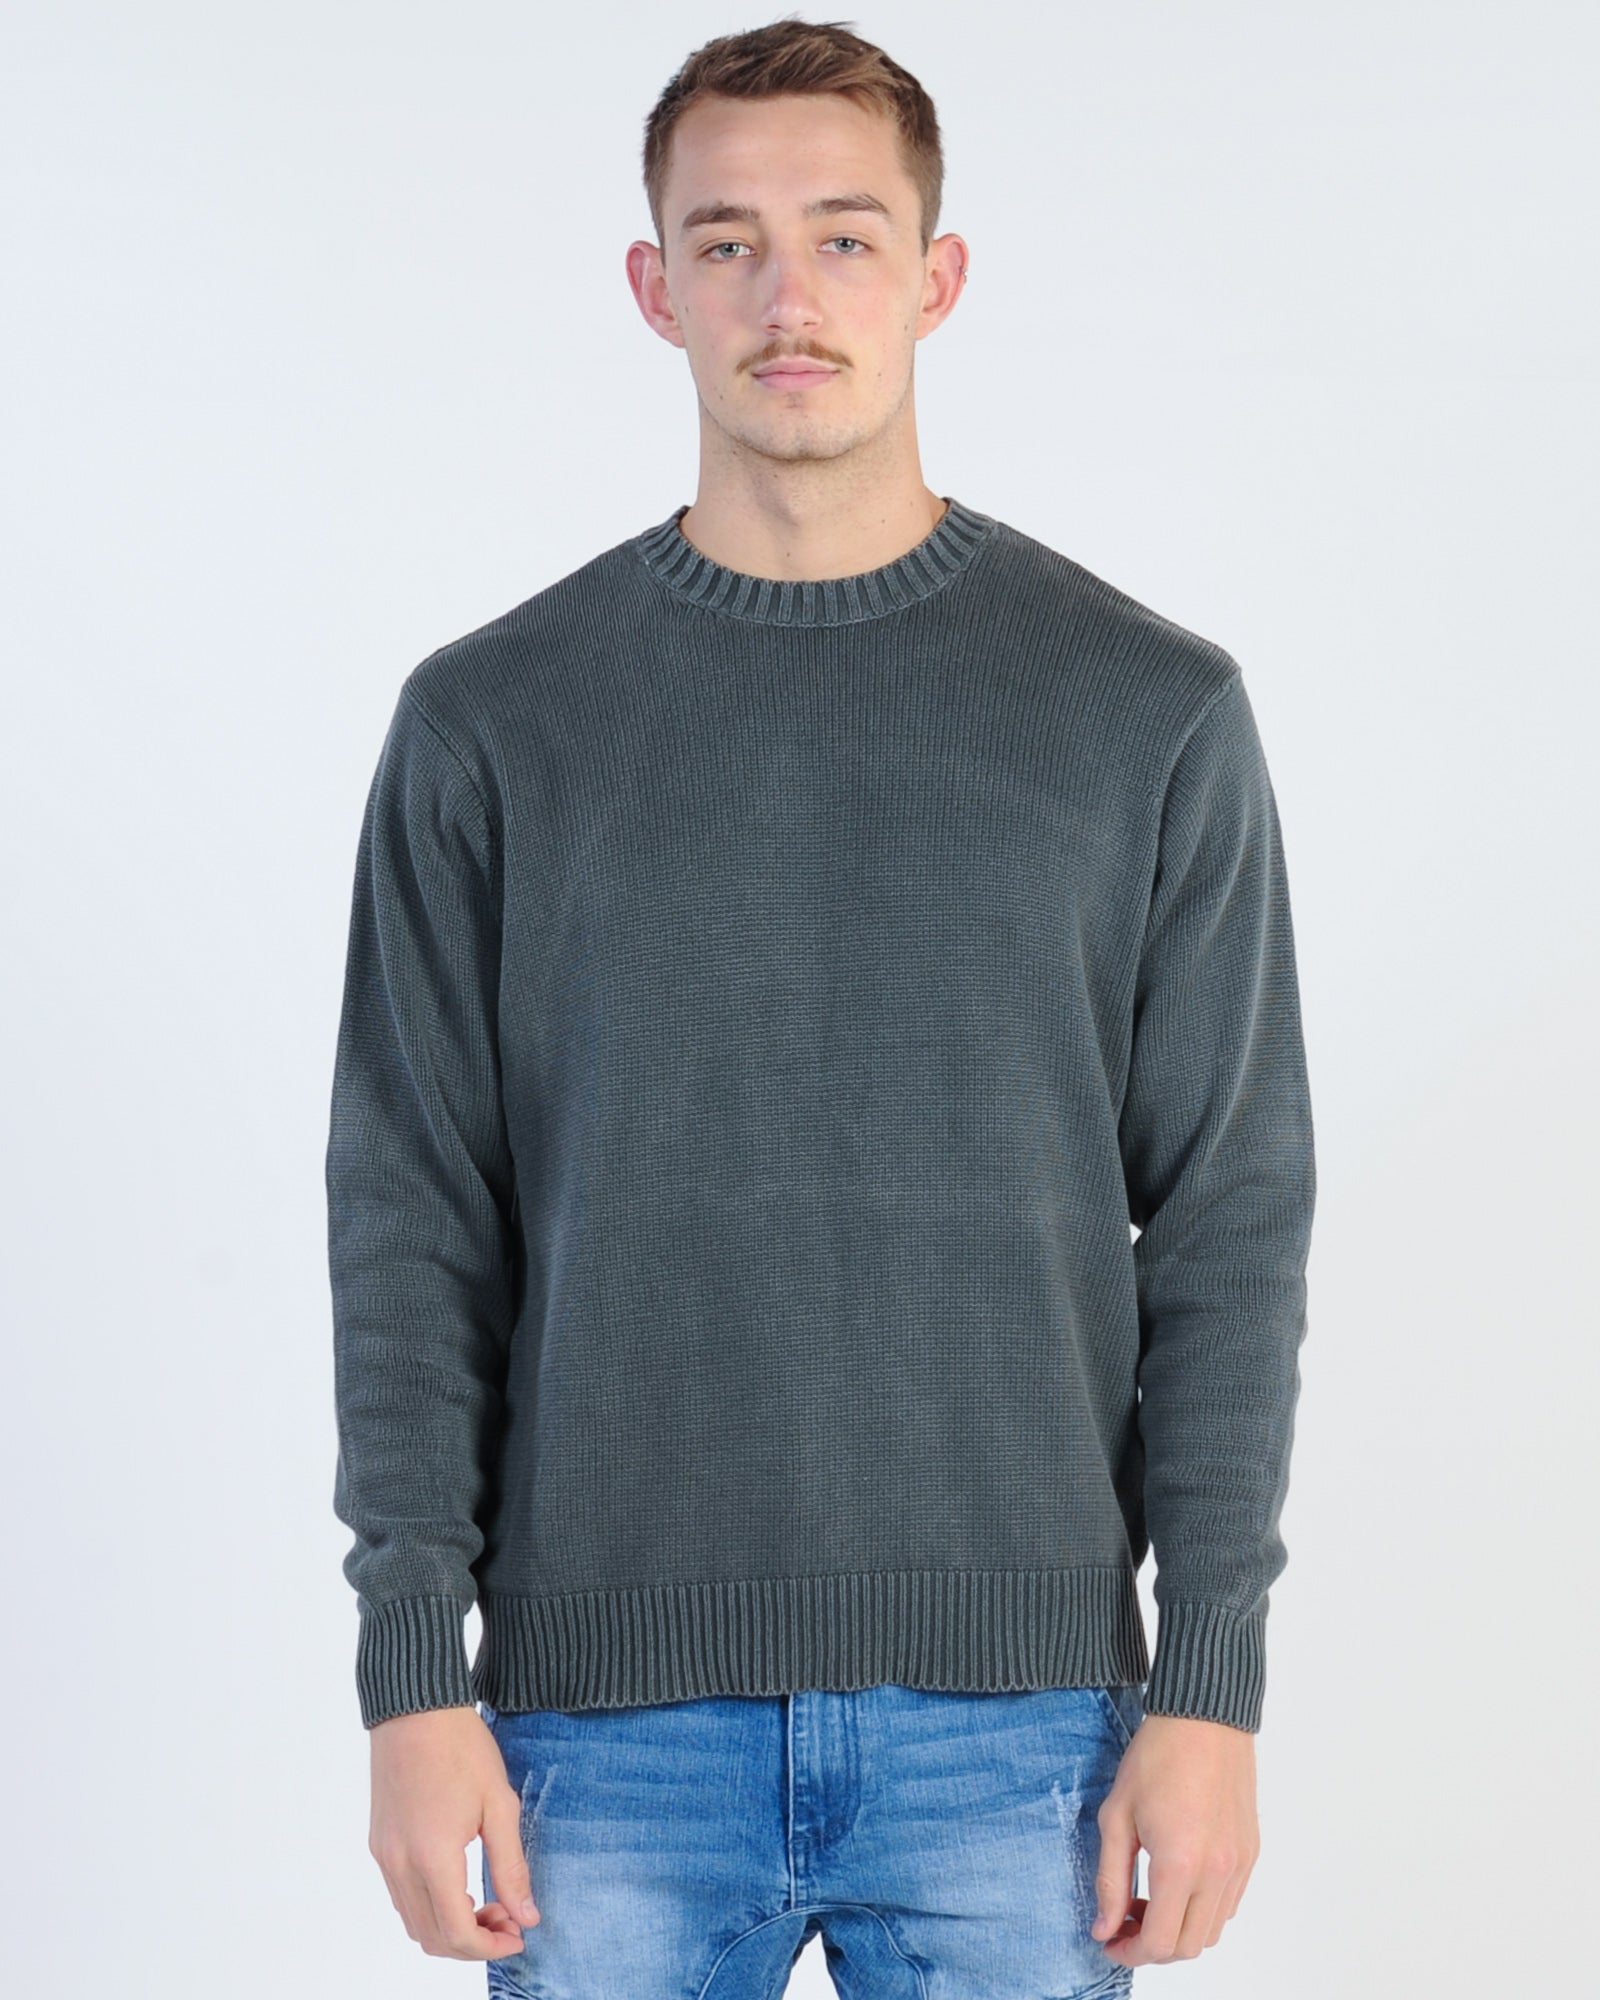 Silent Theory Matrix Knit Jumper - Charcoal